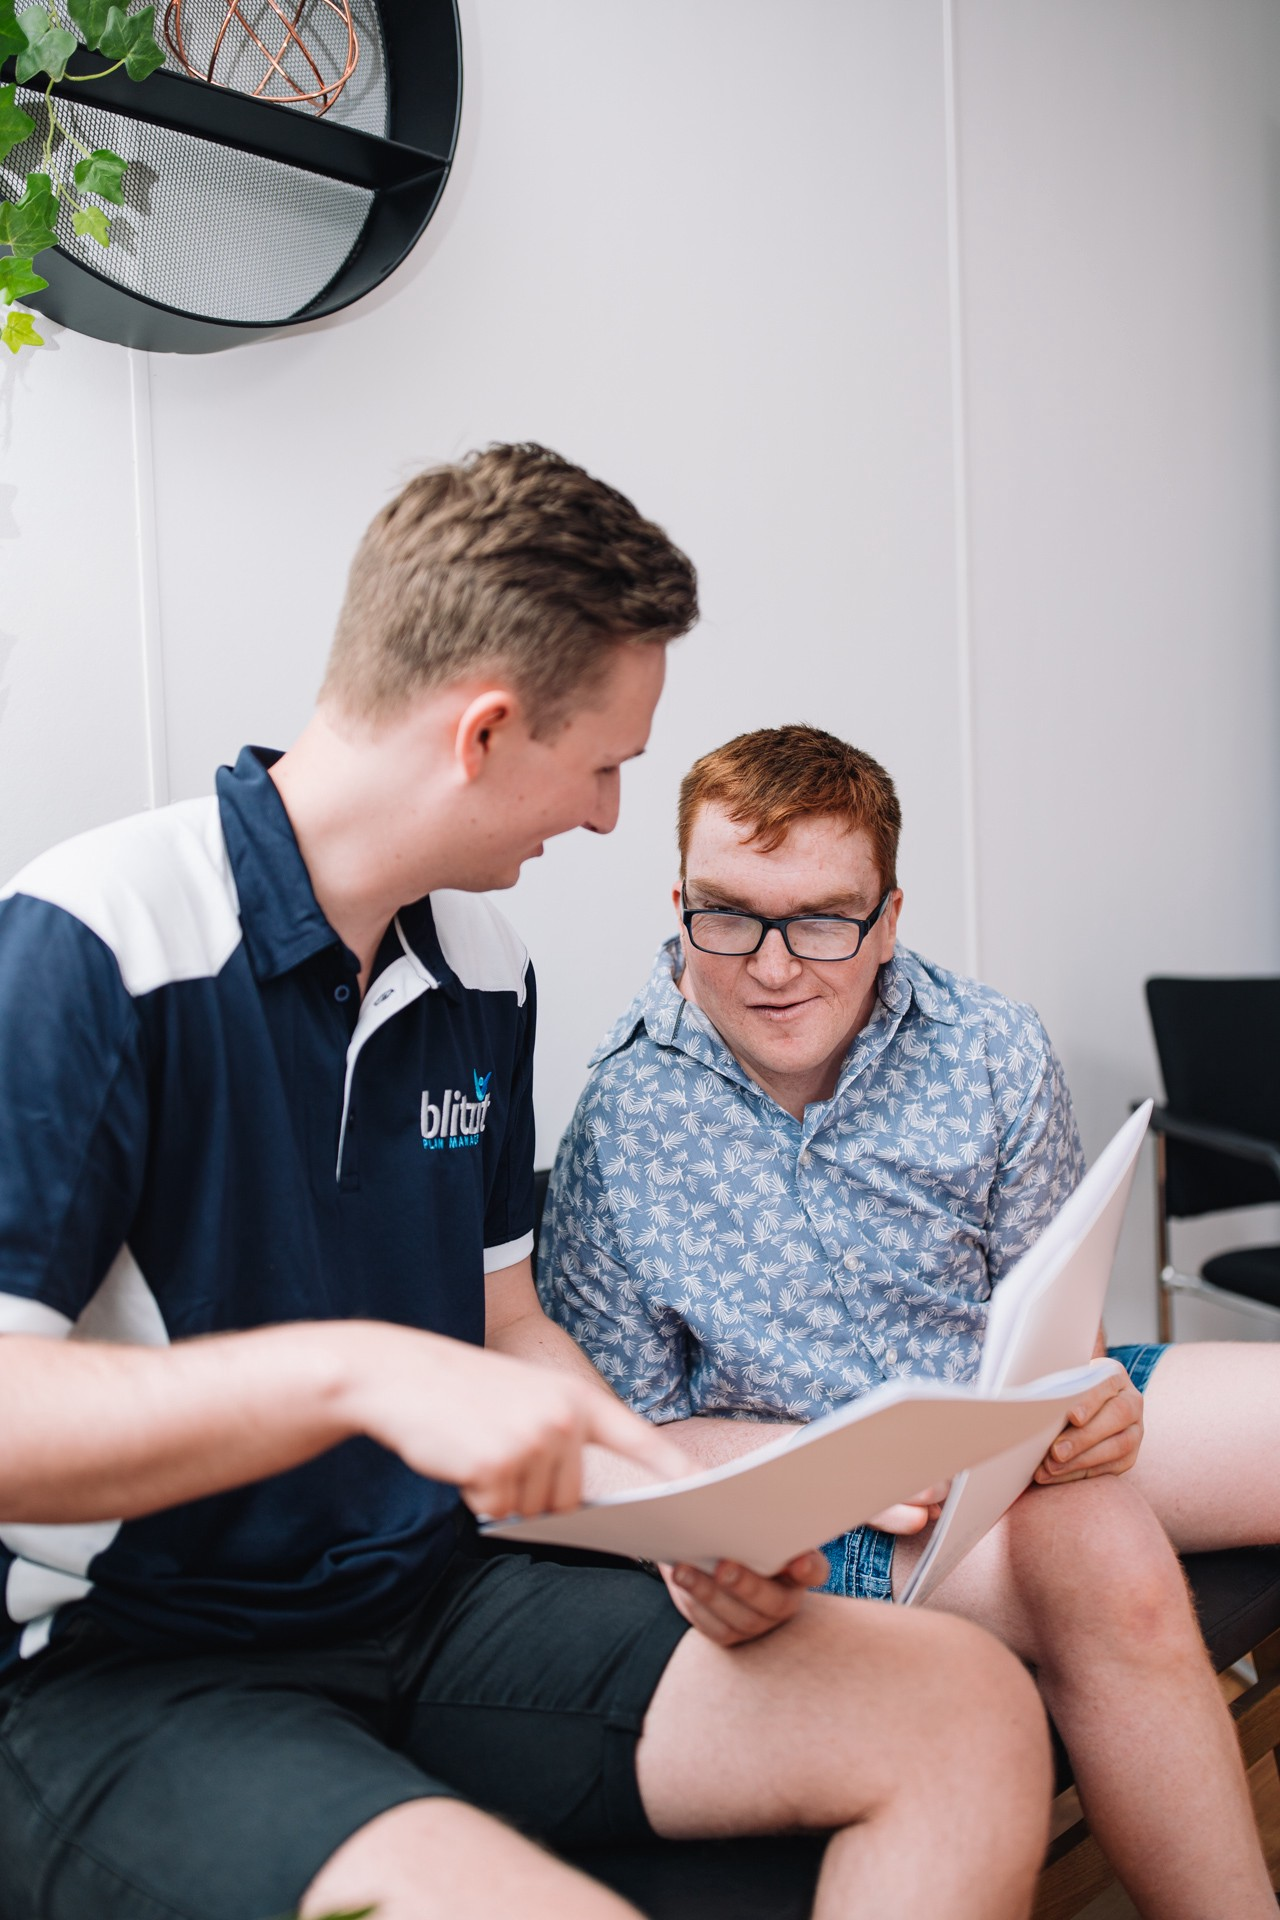 Ned (young male) from the Blitzit Team is showing a participant papers on how Blitzit can help with their NDIS plan. Ned is at the front in a Blue & White Blitzit shirt and the Male Participant who wears glasses and has red hair, wearing a light blue patterned shirt, is looking at the papers. They sit on a plain background.